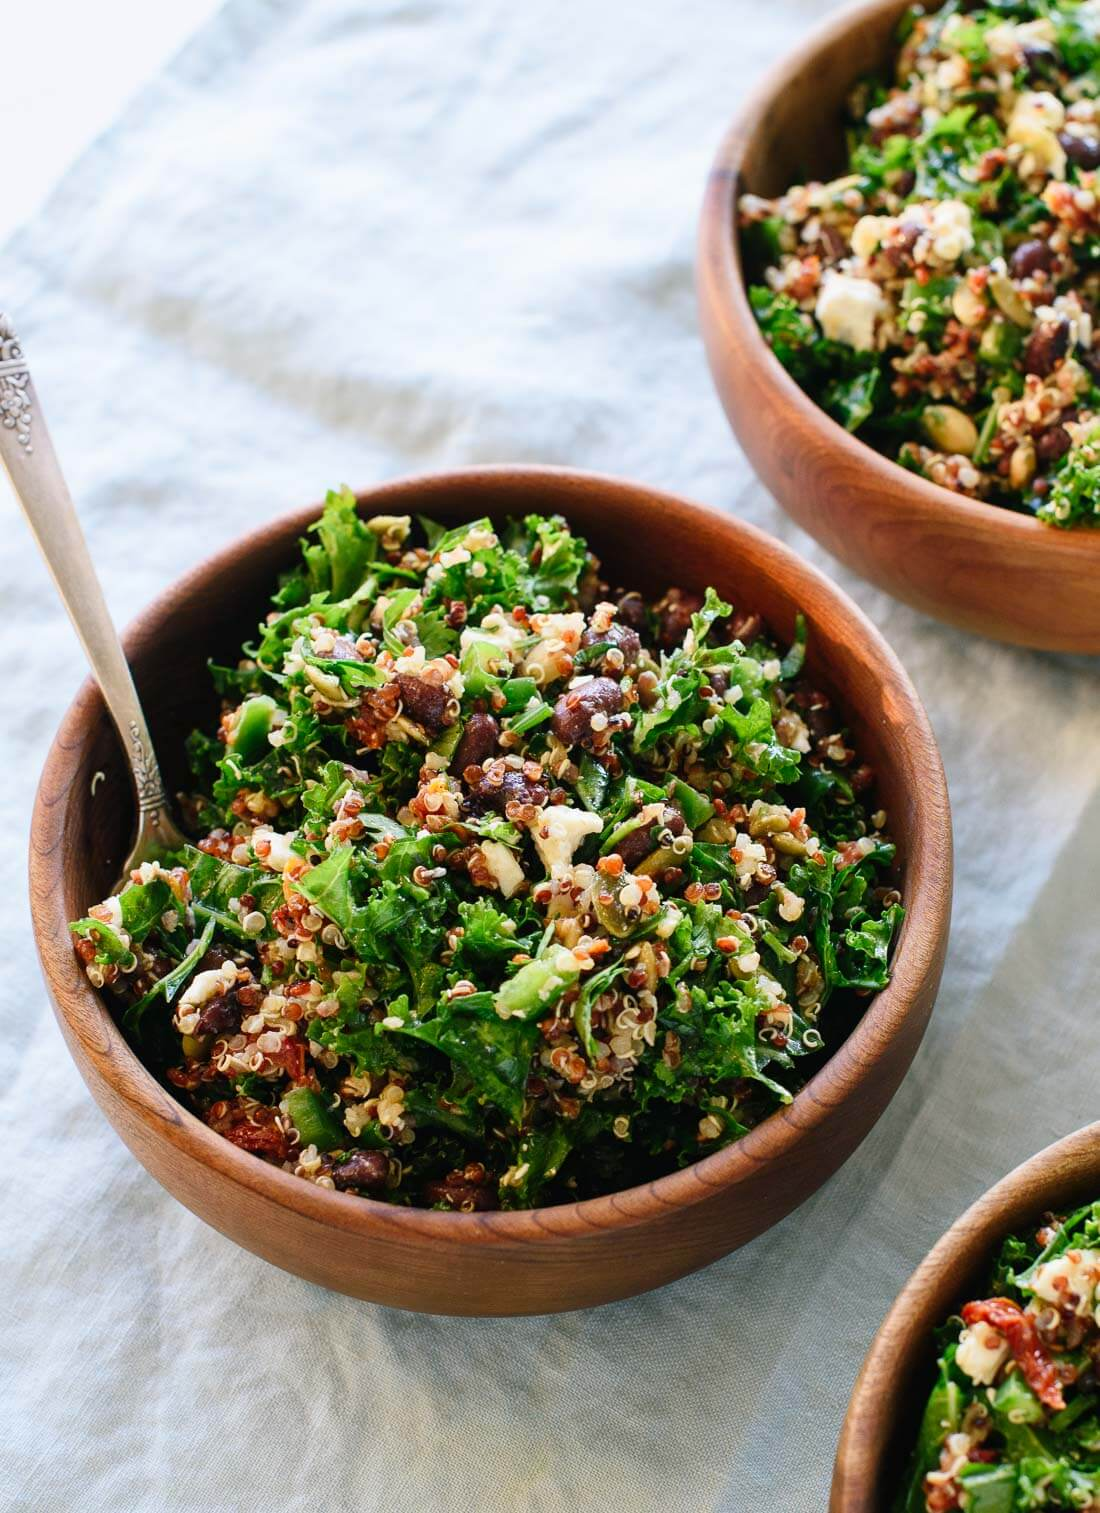 This Mexican kale and quinoa salad packs great for lunch! cookieandkate.com